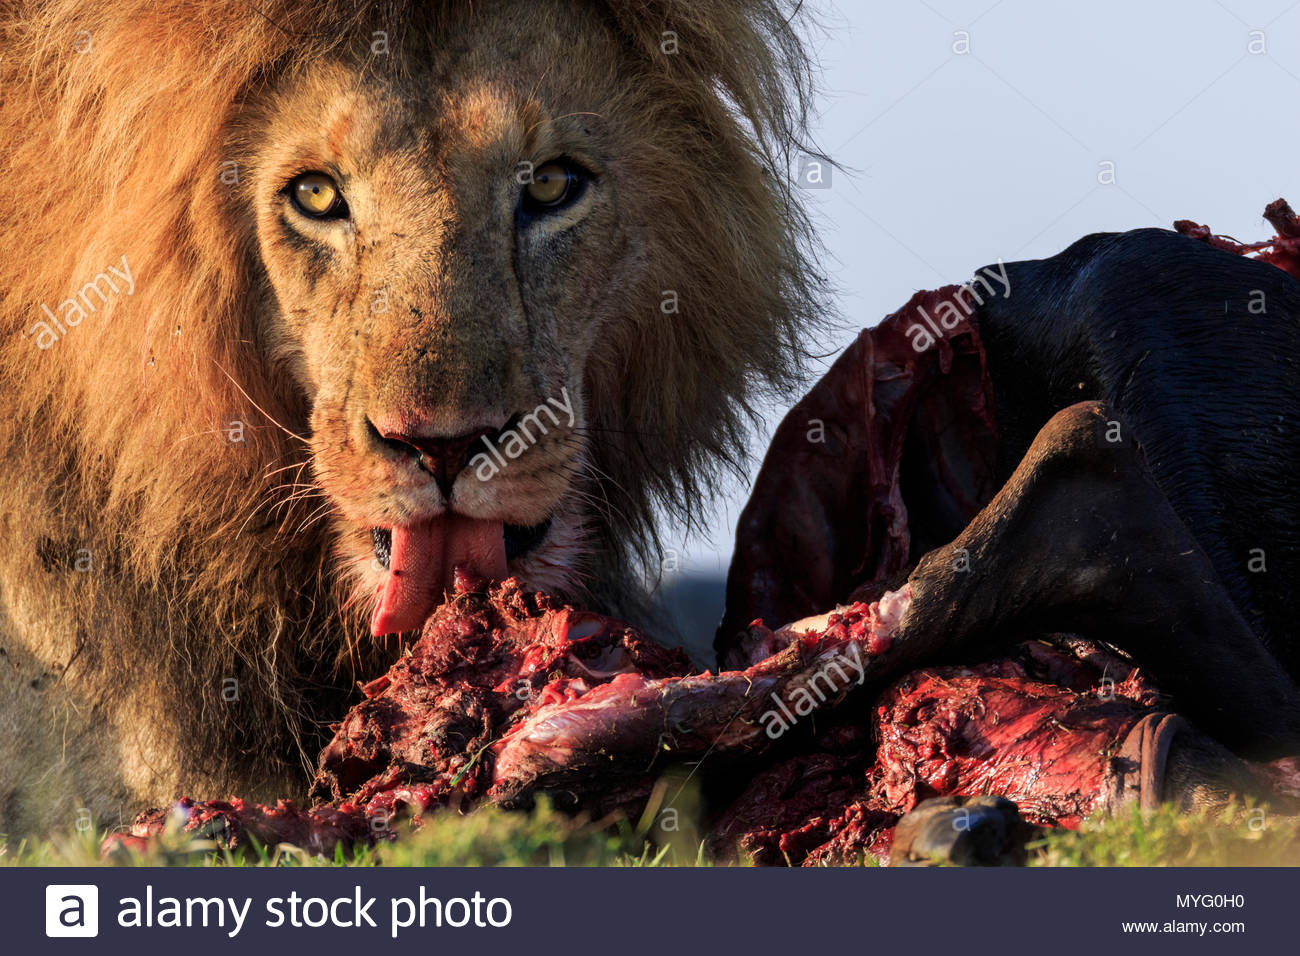 A male lion (Panthera leo) feasts on a downed wildebeest. - Stock Image